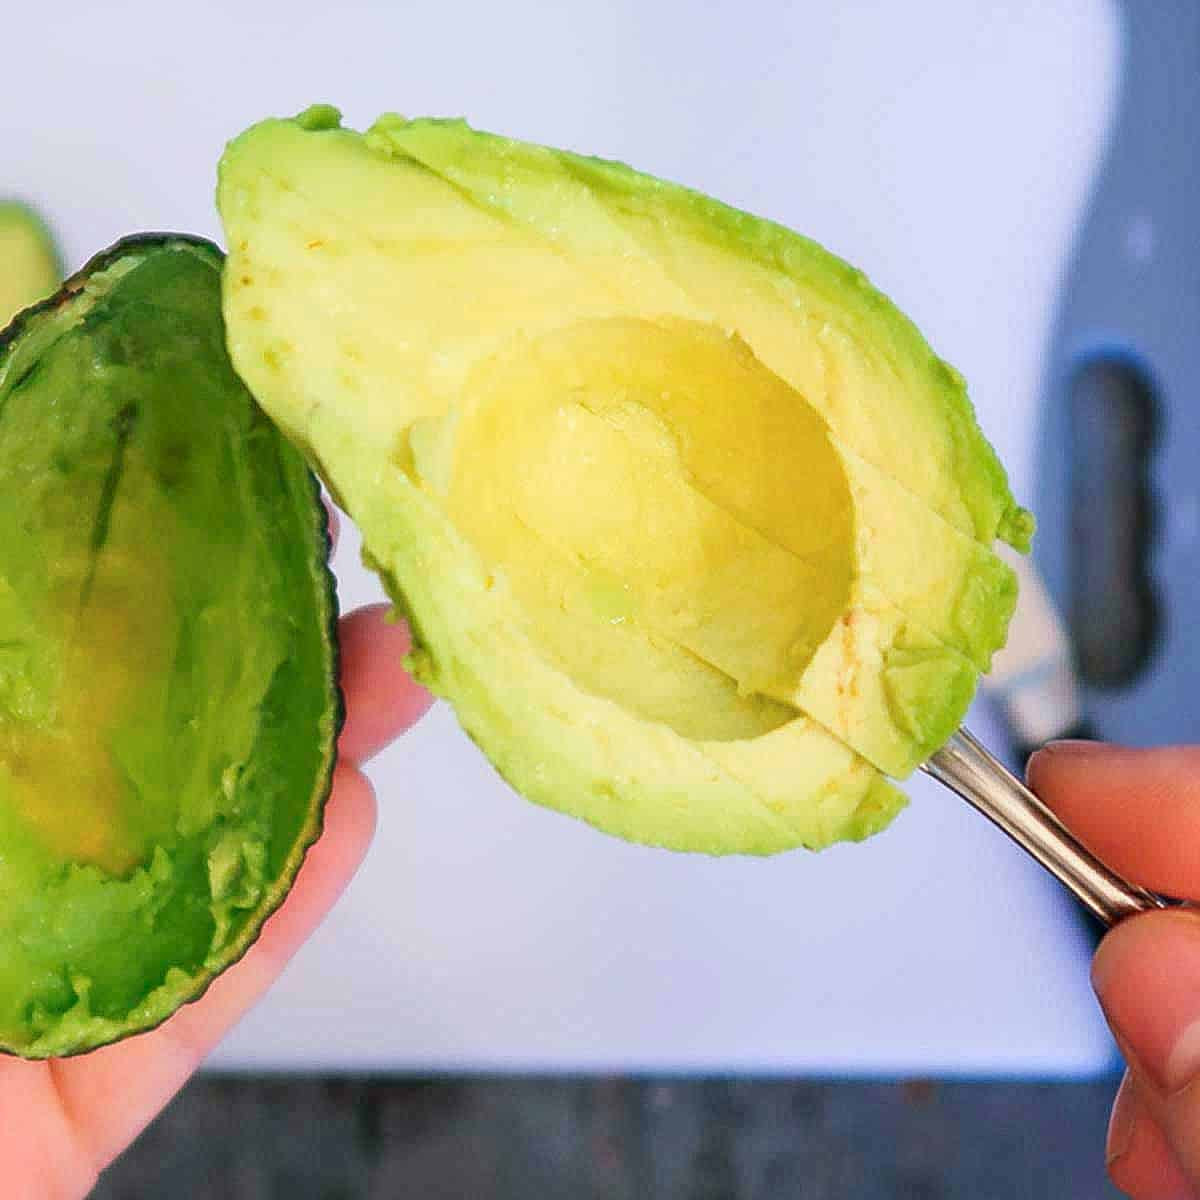 Half of an avocado cut into slices in a spoon